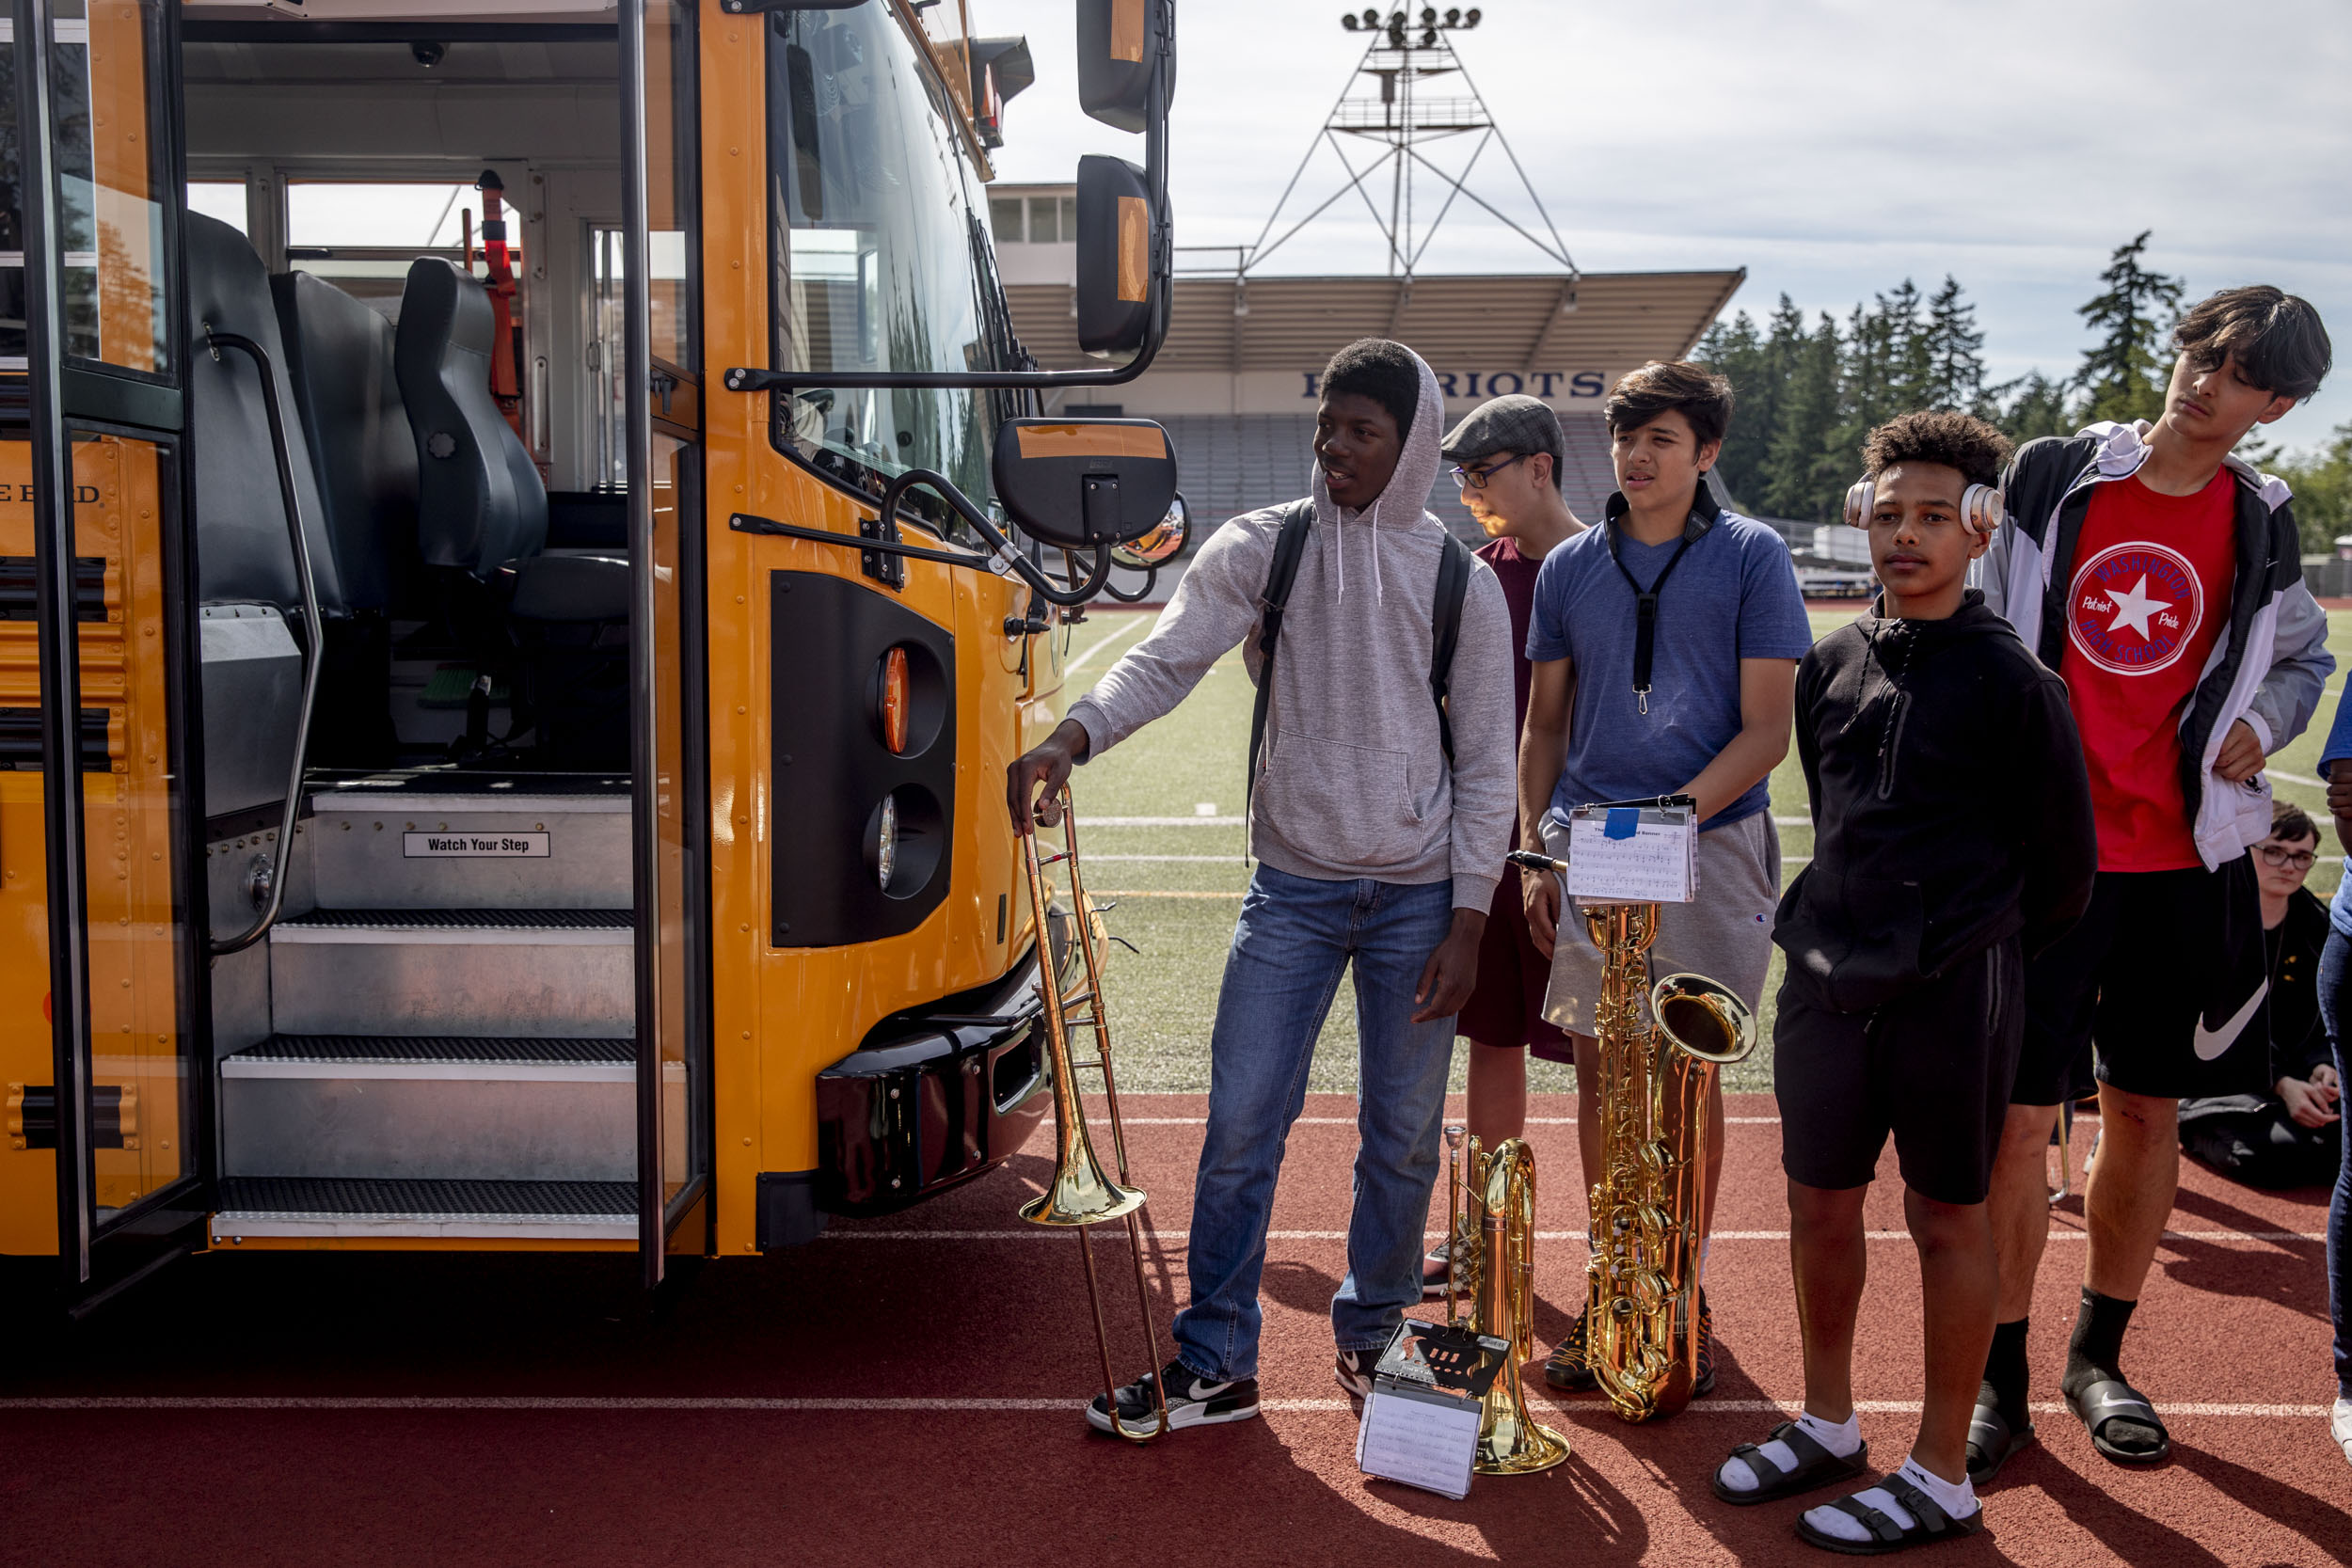 Students listen to speakers next to the first electric school bus in Washington state during an event with Governor Jay Inslee at Franklin Pierce High School in Tacoma on June 17, 2019. (Photo by Dorothy Edwards/Crosscut)